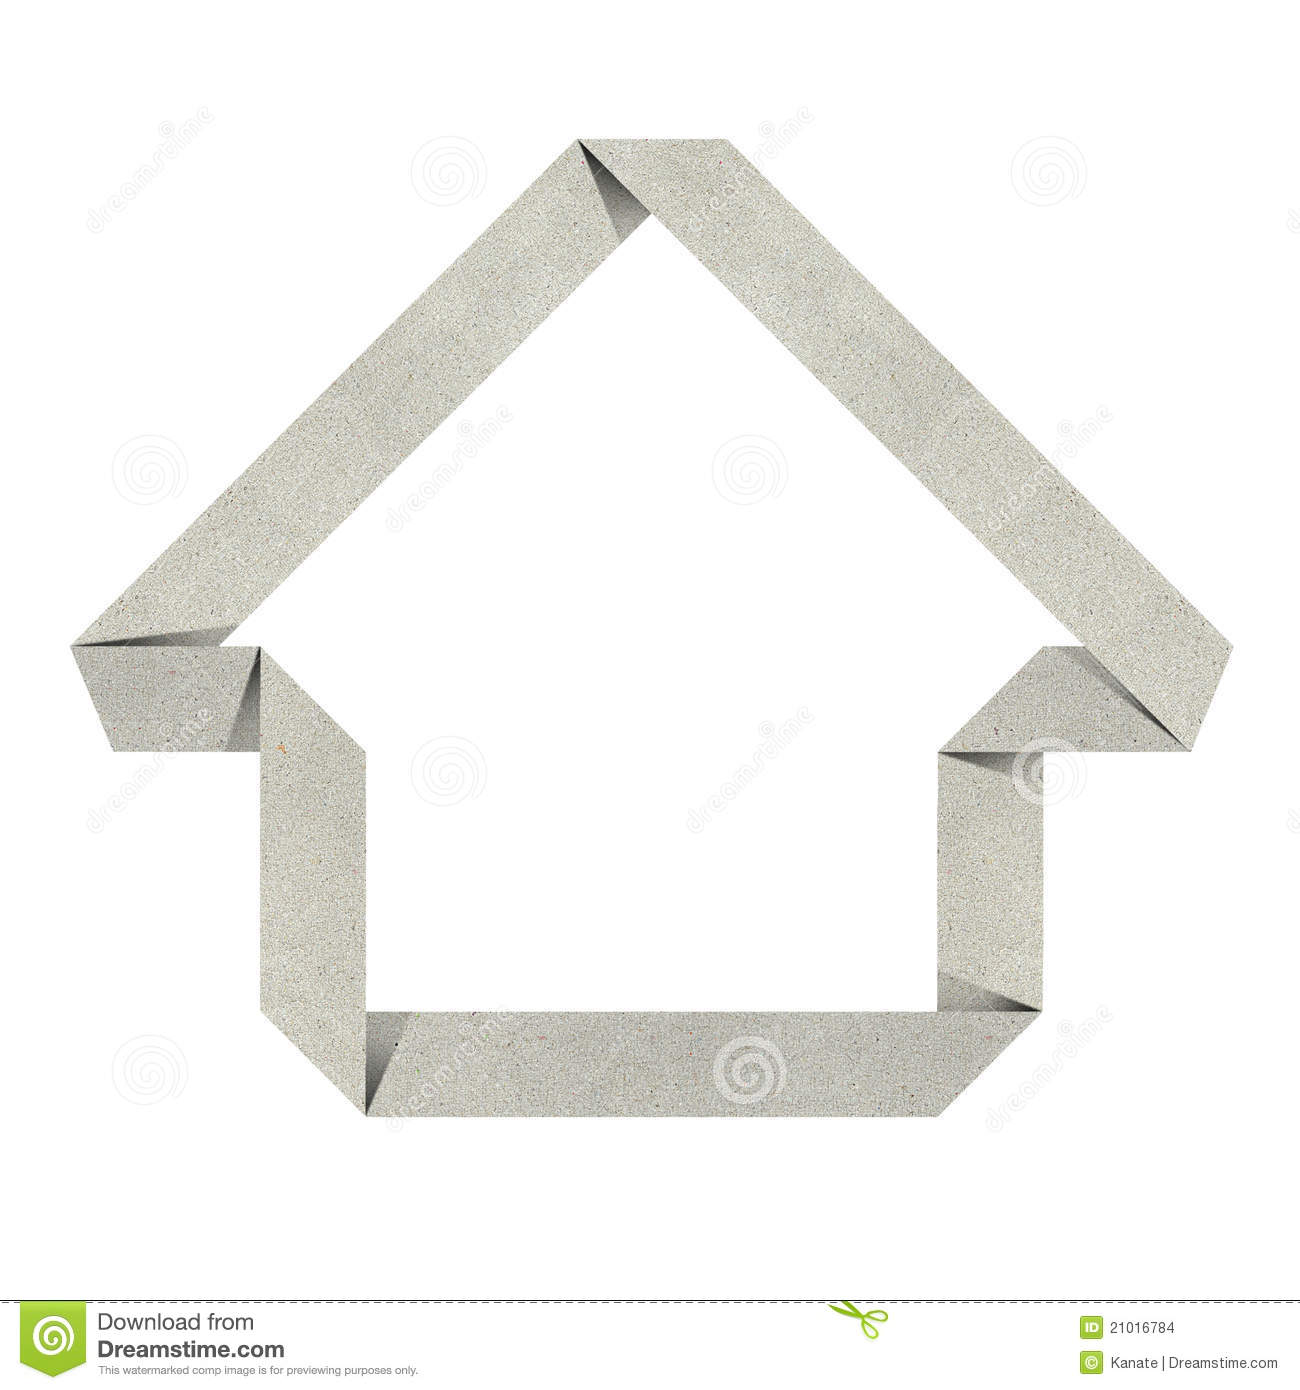 House Origami Recycled Papercraft Stock Images - Image: 21016784